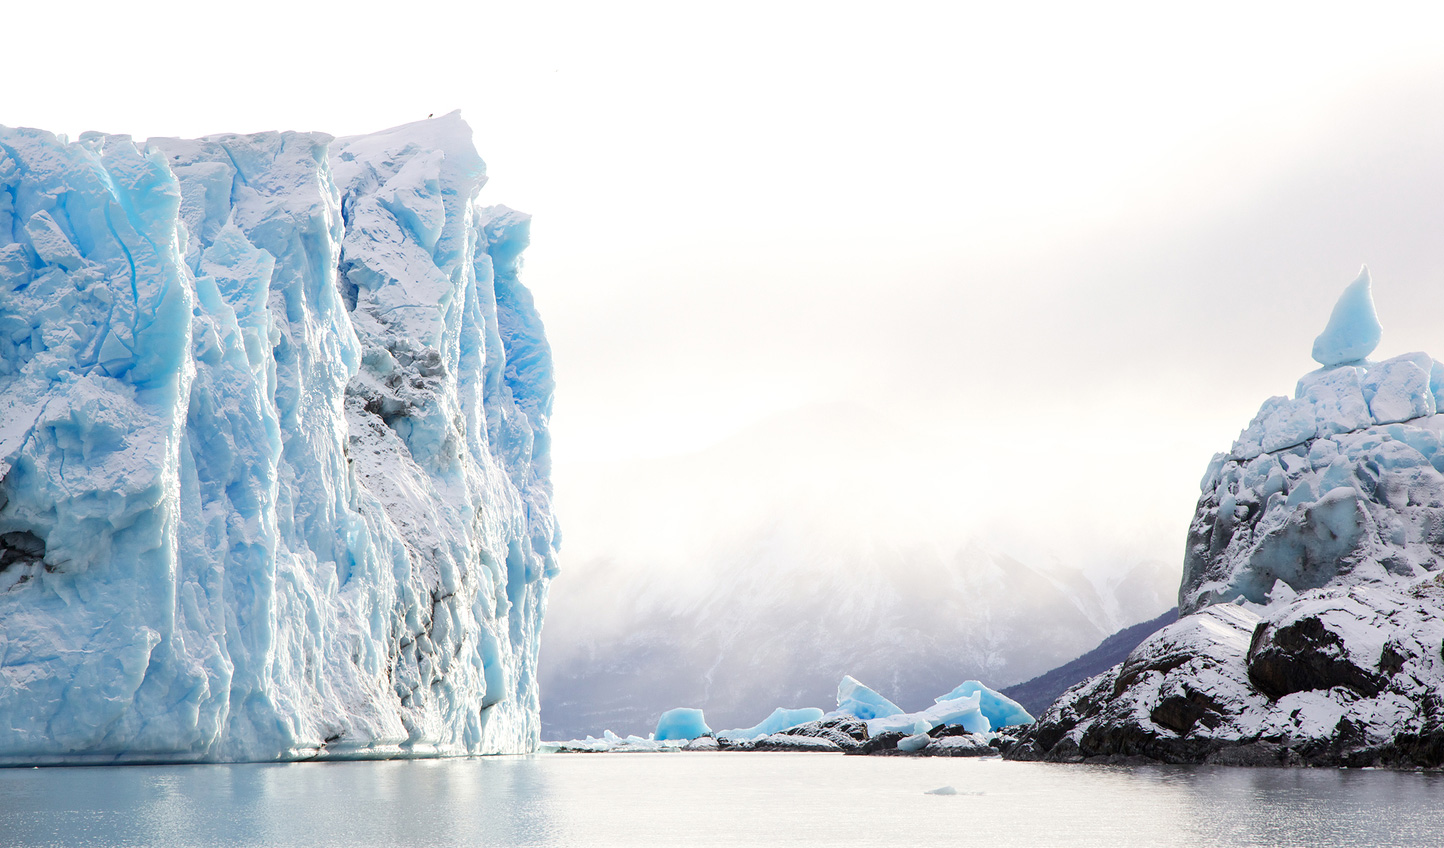 Make your way through Argentina's frozen land